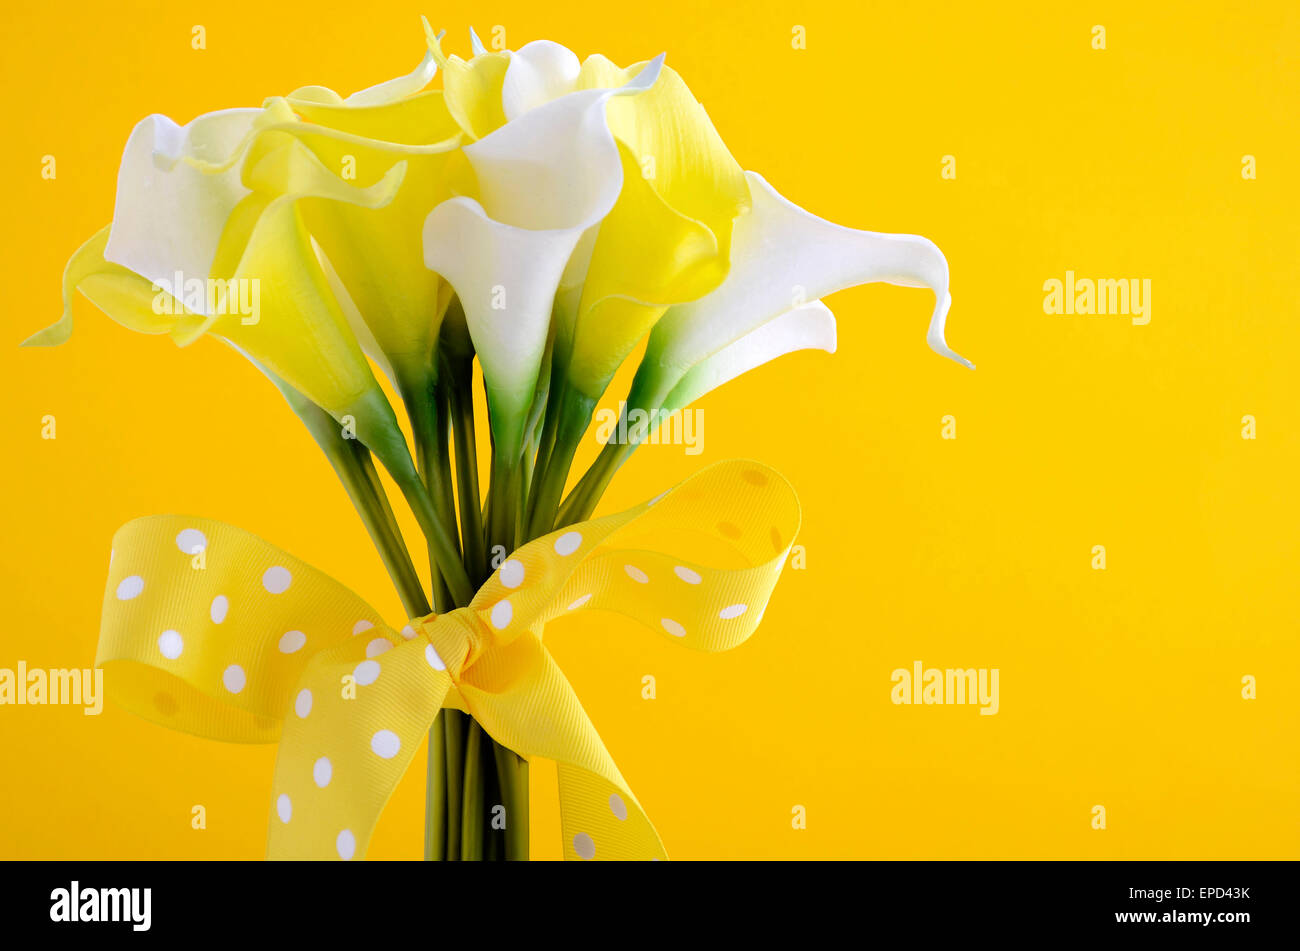 Yellow And White Theme Calla Lilly Wedding Bouquet Against Yellow